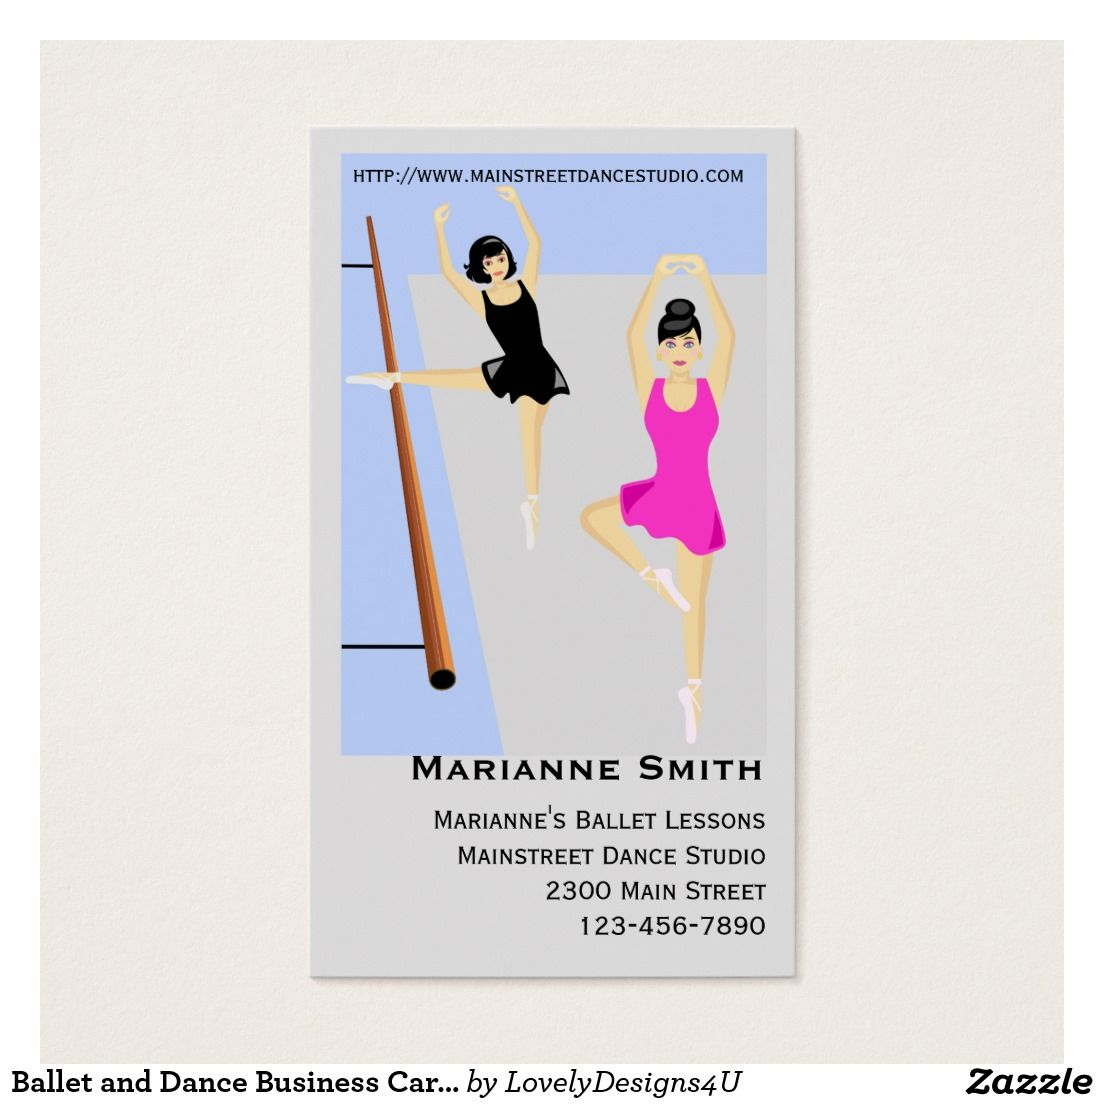 Ballet and Dance Business Cards | Zazzle | Pinterest | Business ...